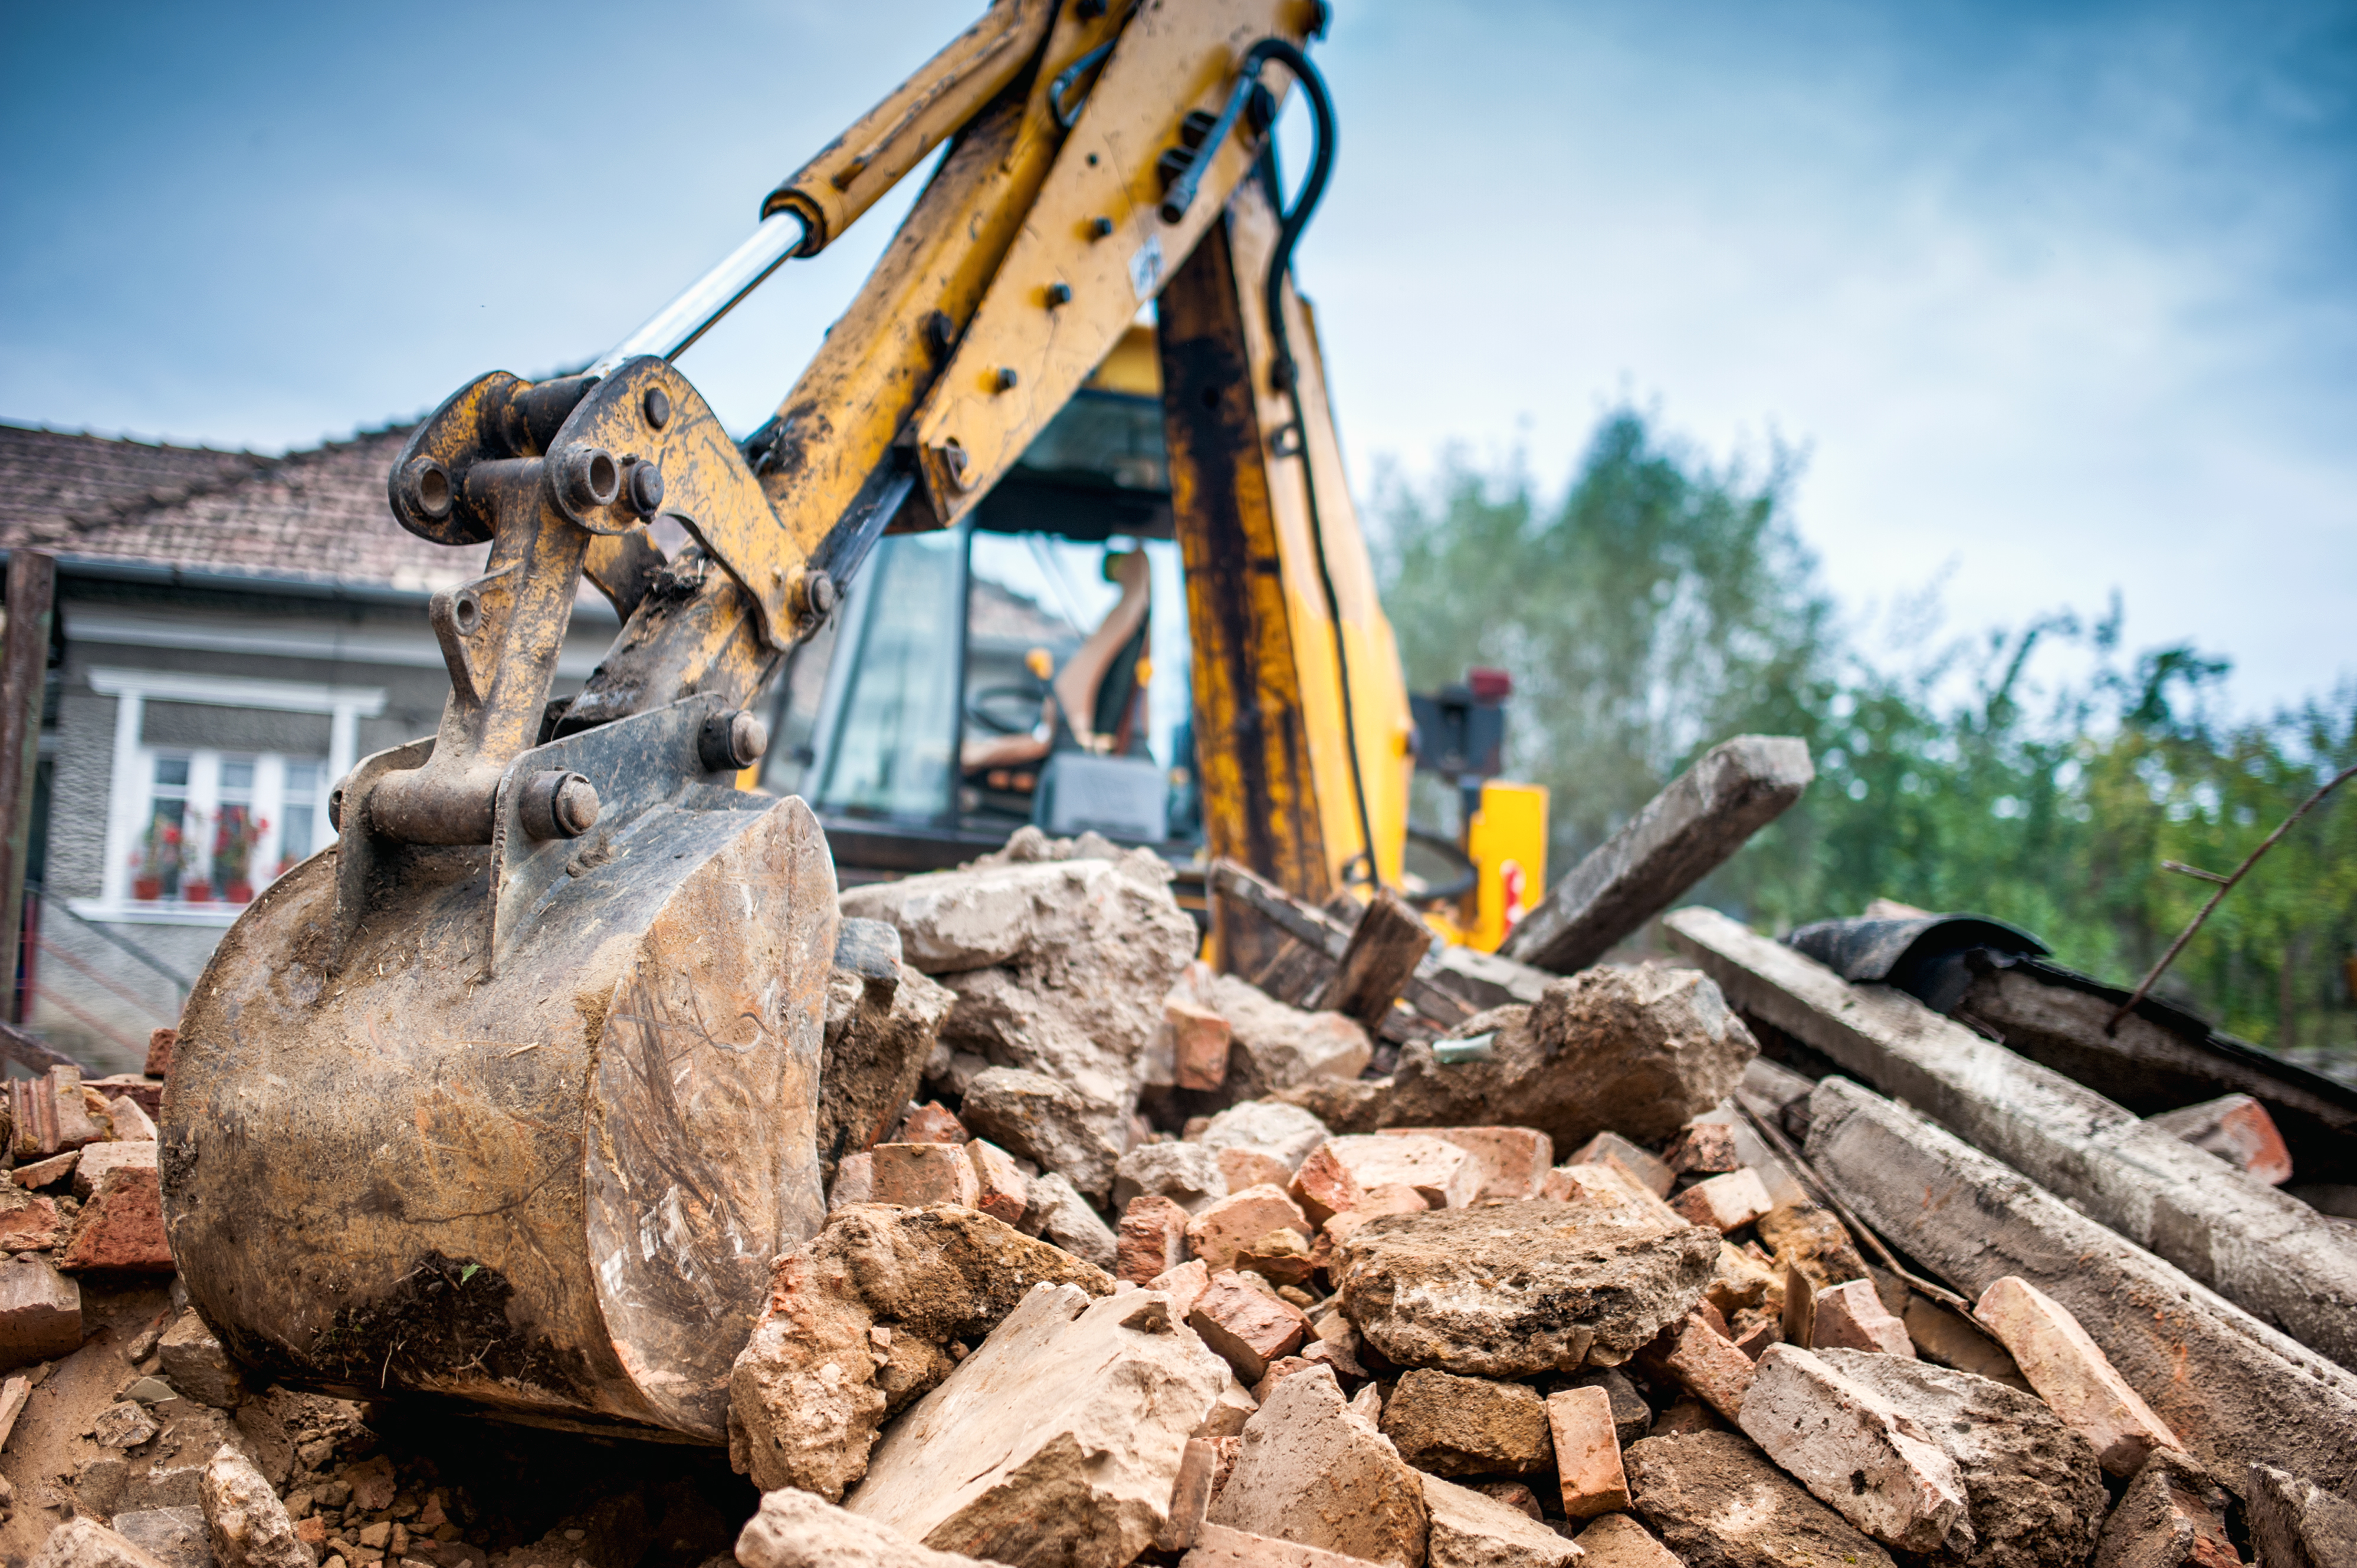 GettyImages 531419555 Construction Site Accidents Cause Injuries, Albuquerque